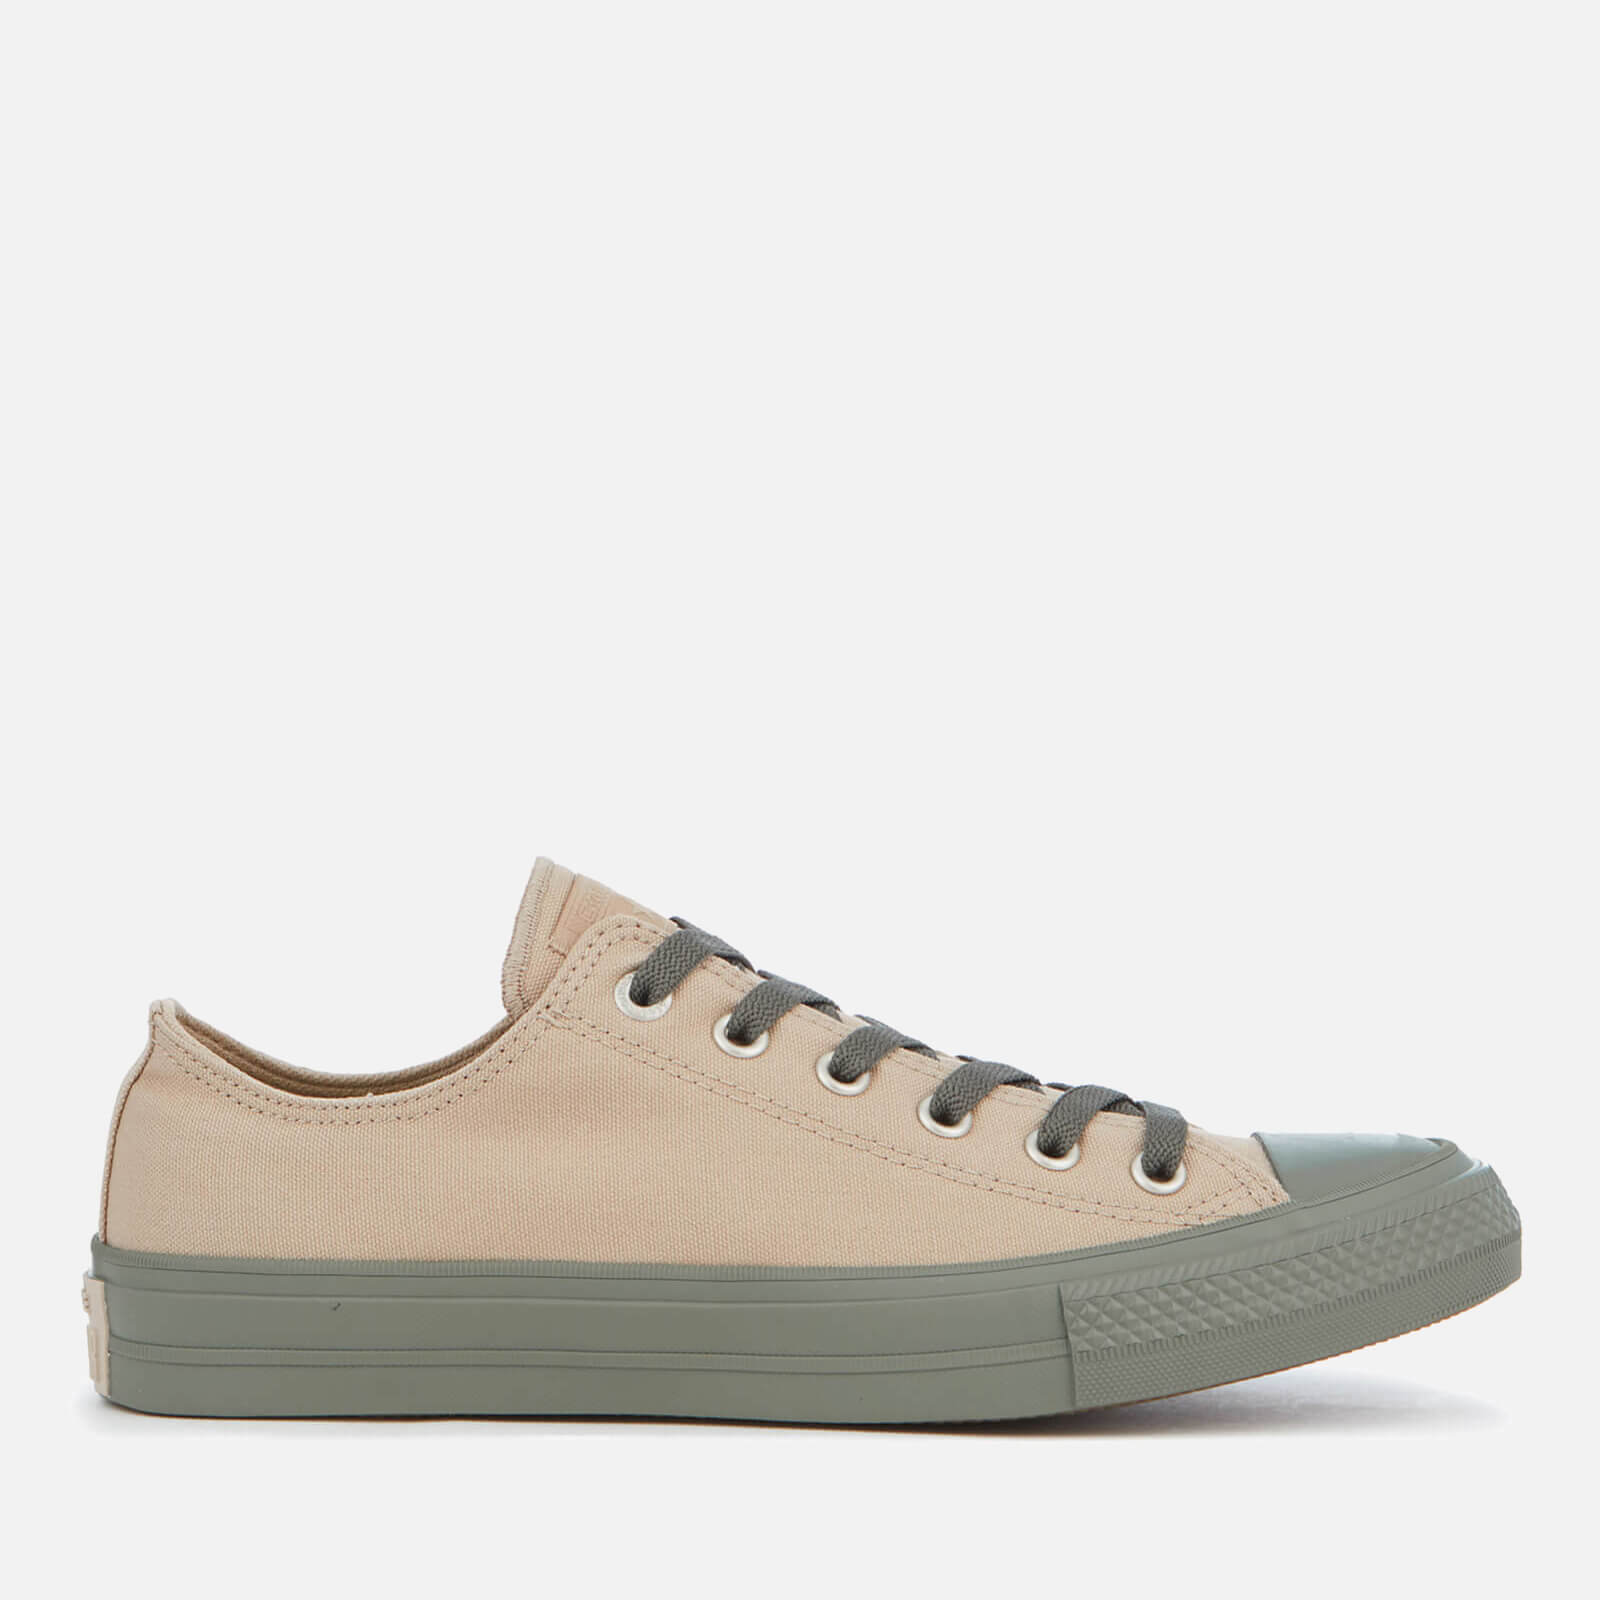 afd92d46ed5135 Converse Men s Chuck Taylor All Star II OX Trainers - Vintage Khaki Olive  Submarine Gim - Free UK Delivery over £50